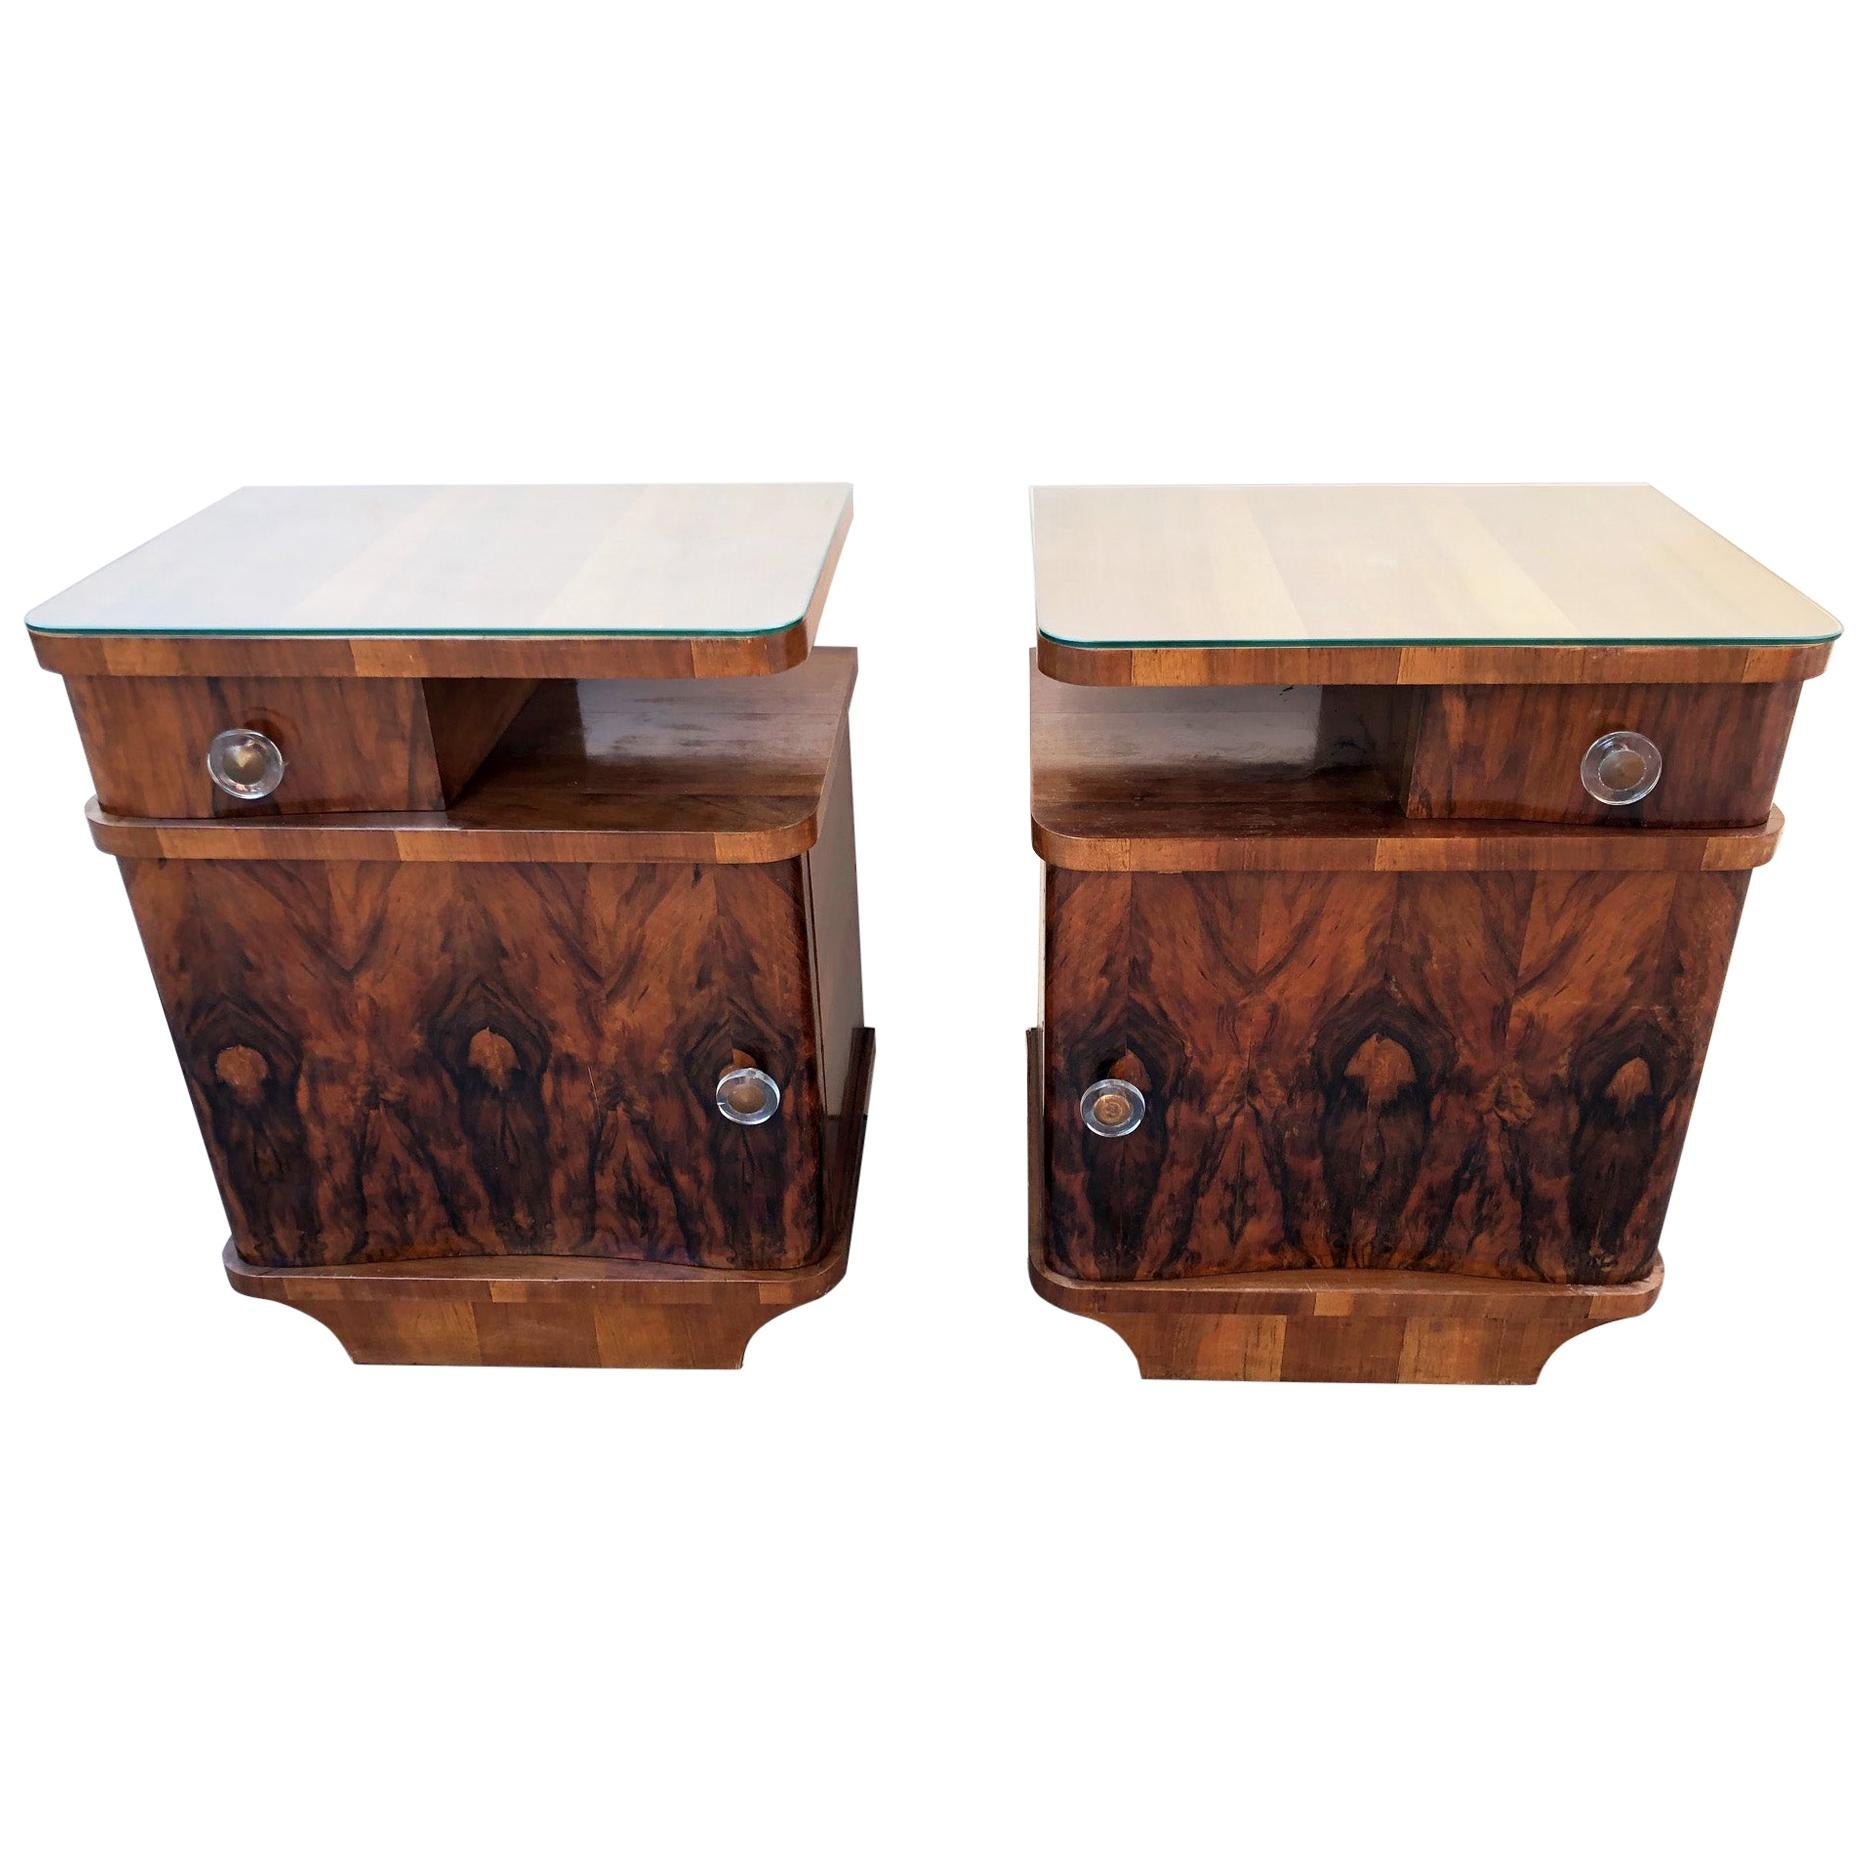 Pair of Italian Decò Nightstands Walnut 1960 with Glass, Right and Left, Design